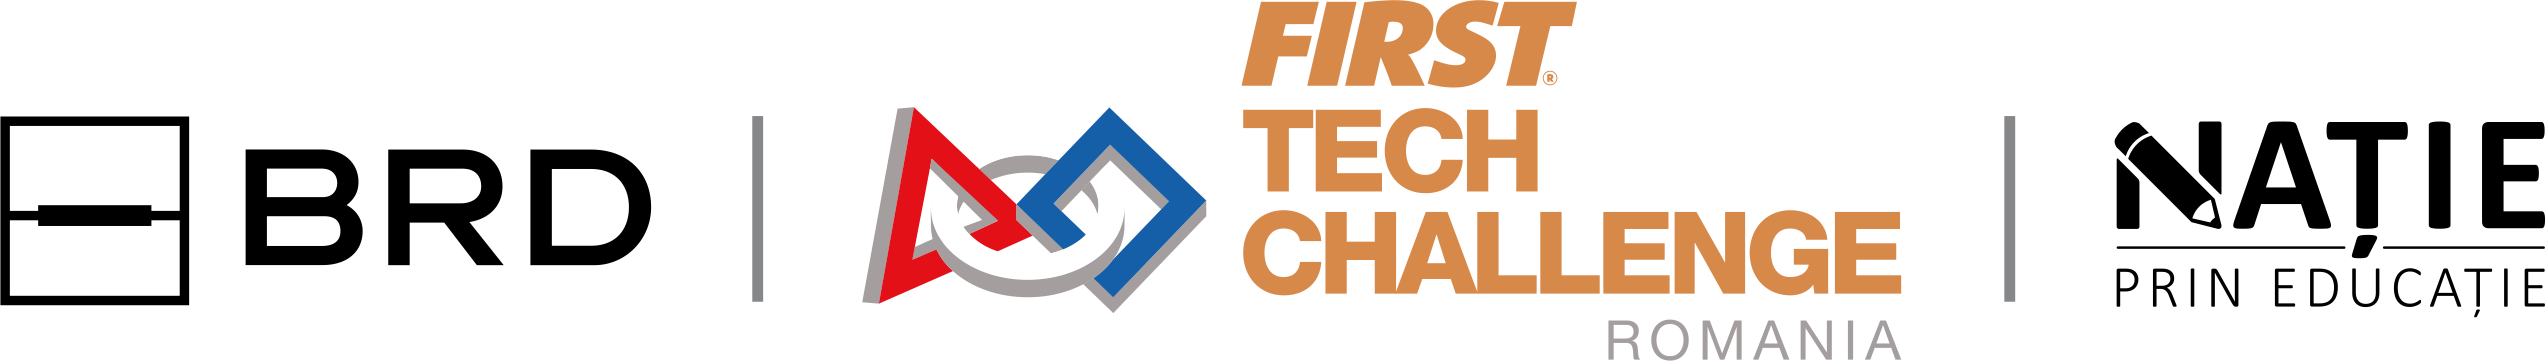 Logo_Program_robotica_-_BRD_FIRST_Tech_Challenge_Romania_-_2_(1).png